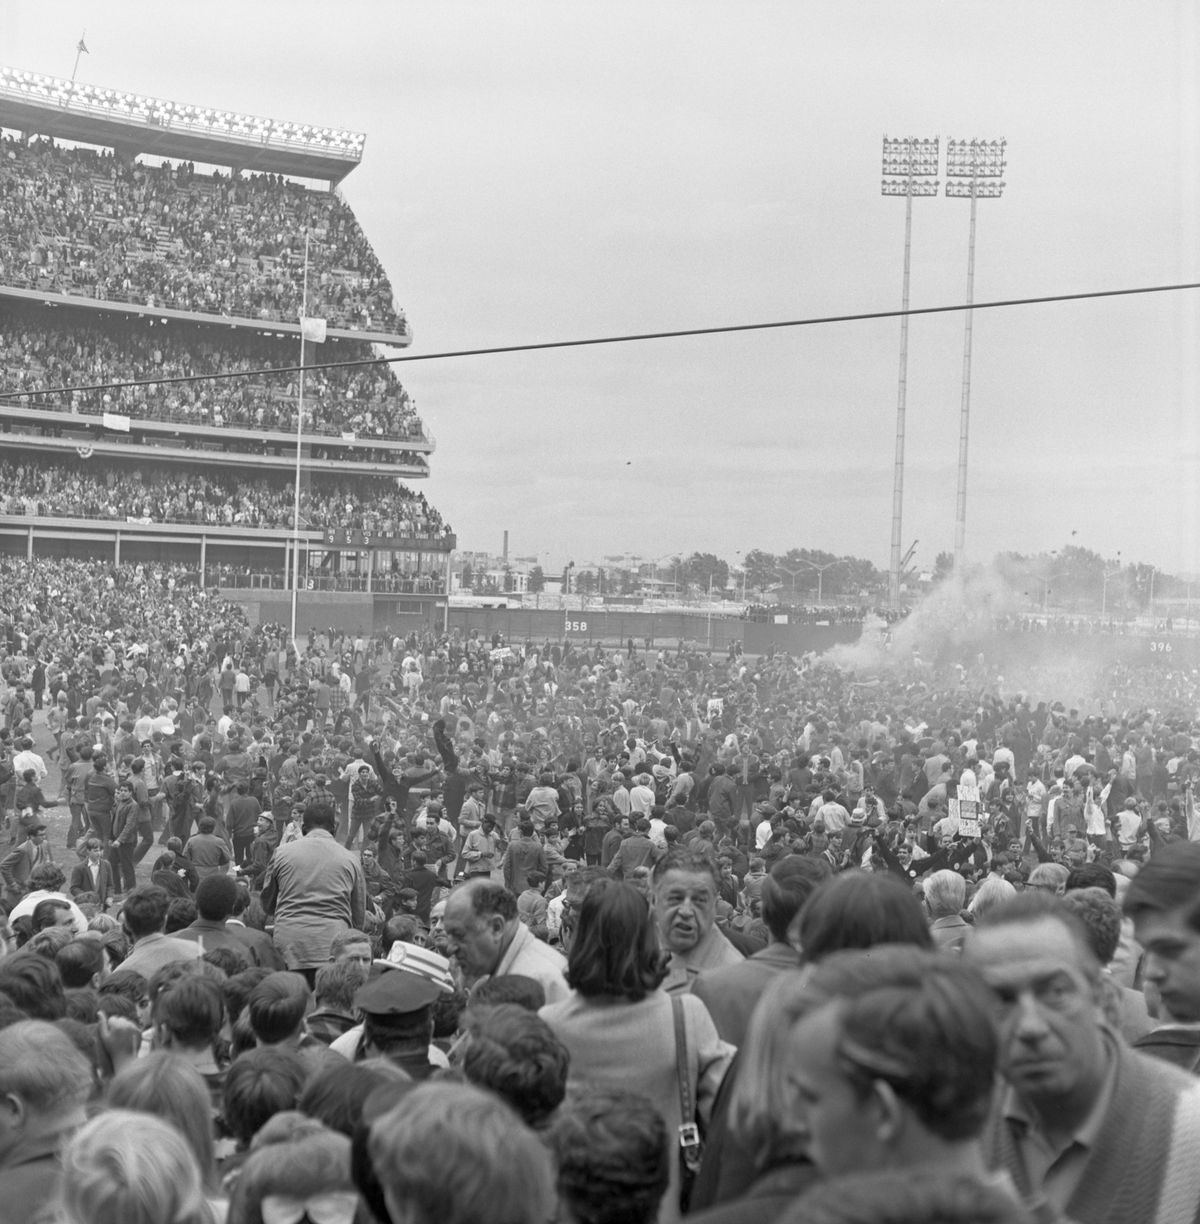 NY Mets Win 1969 World Series - 1000s Of Fans Storm The Field